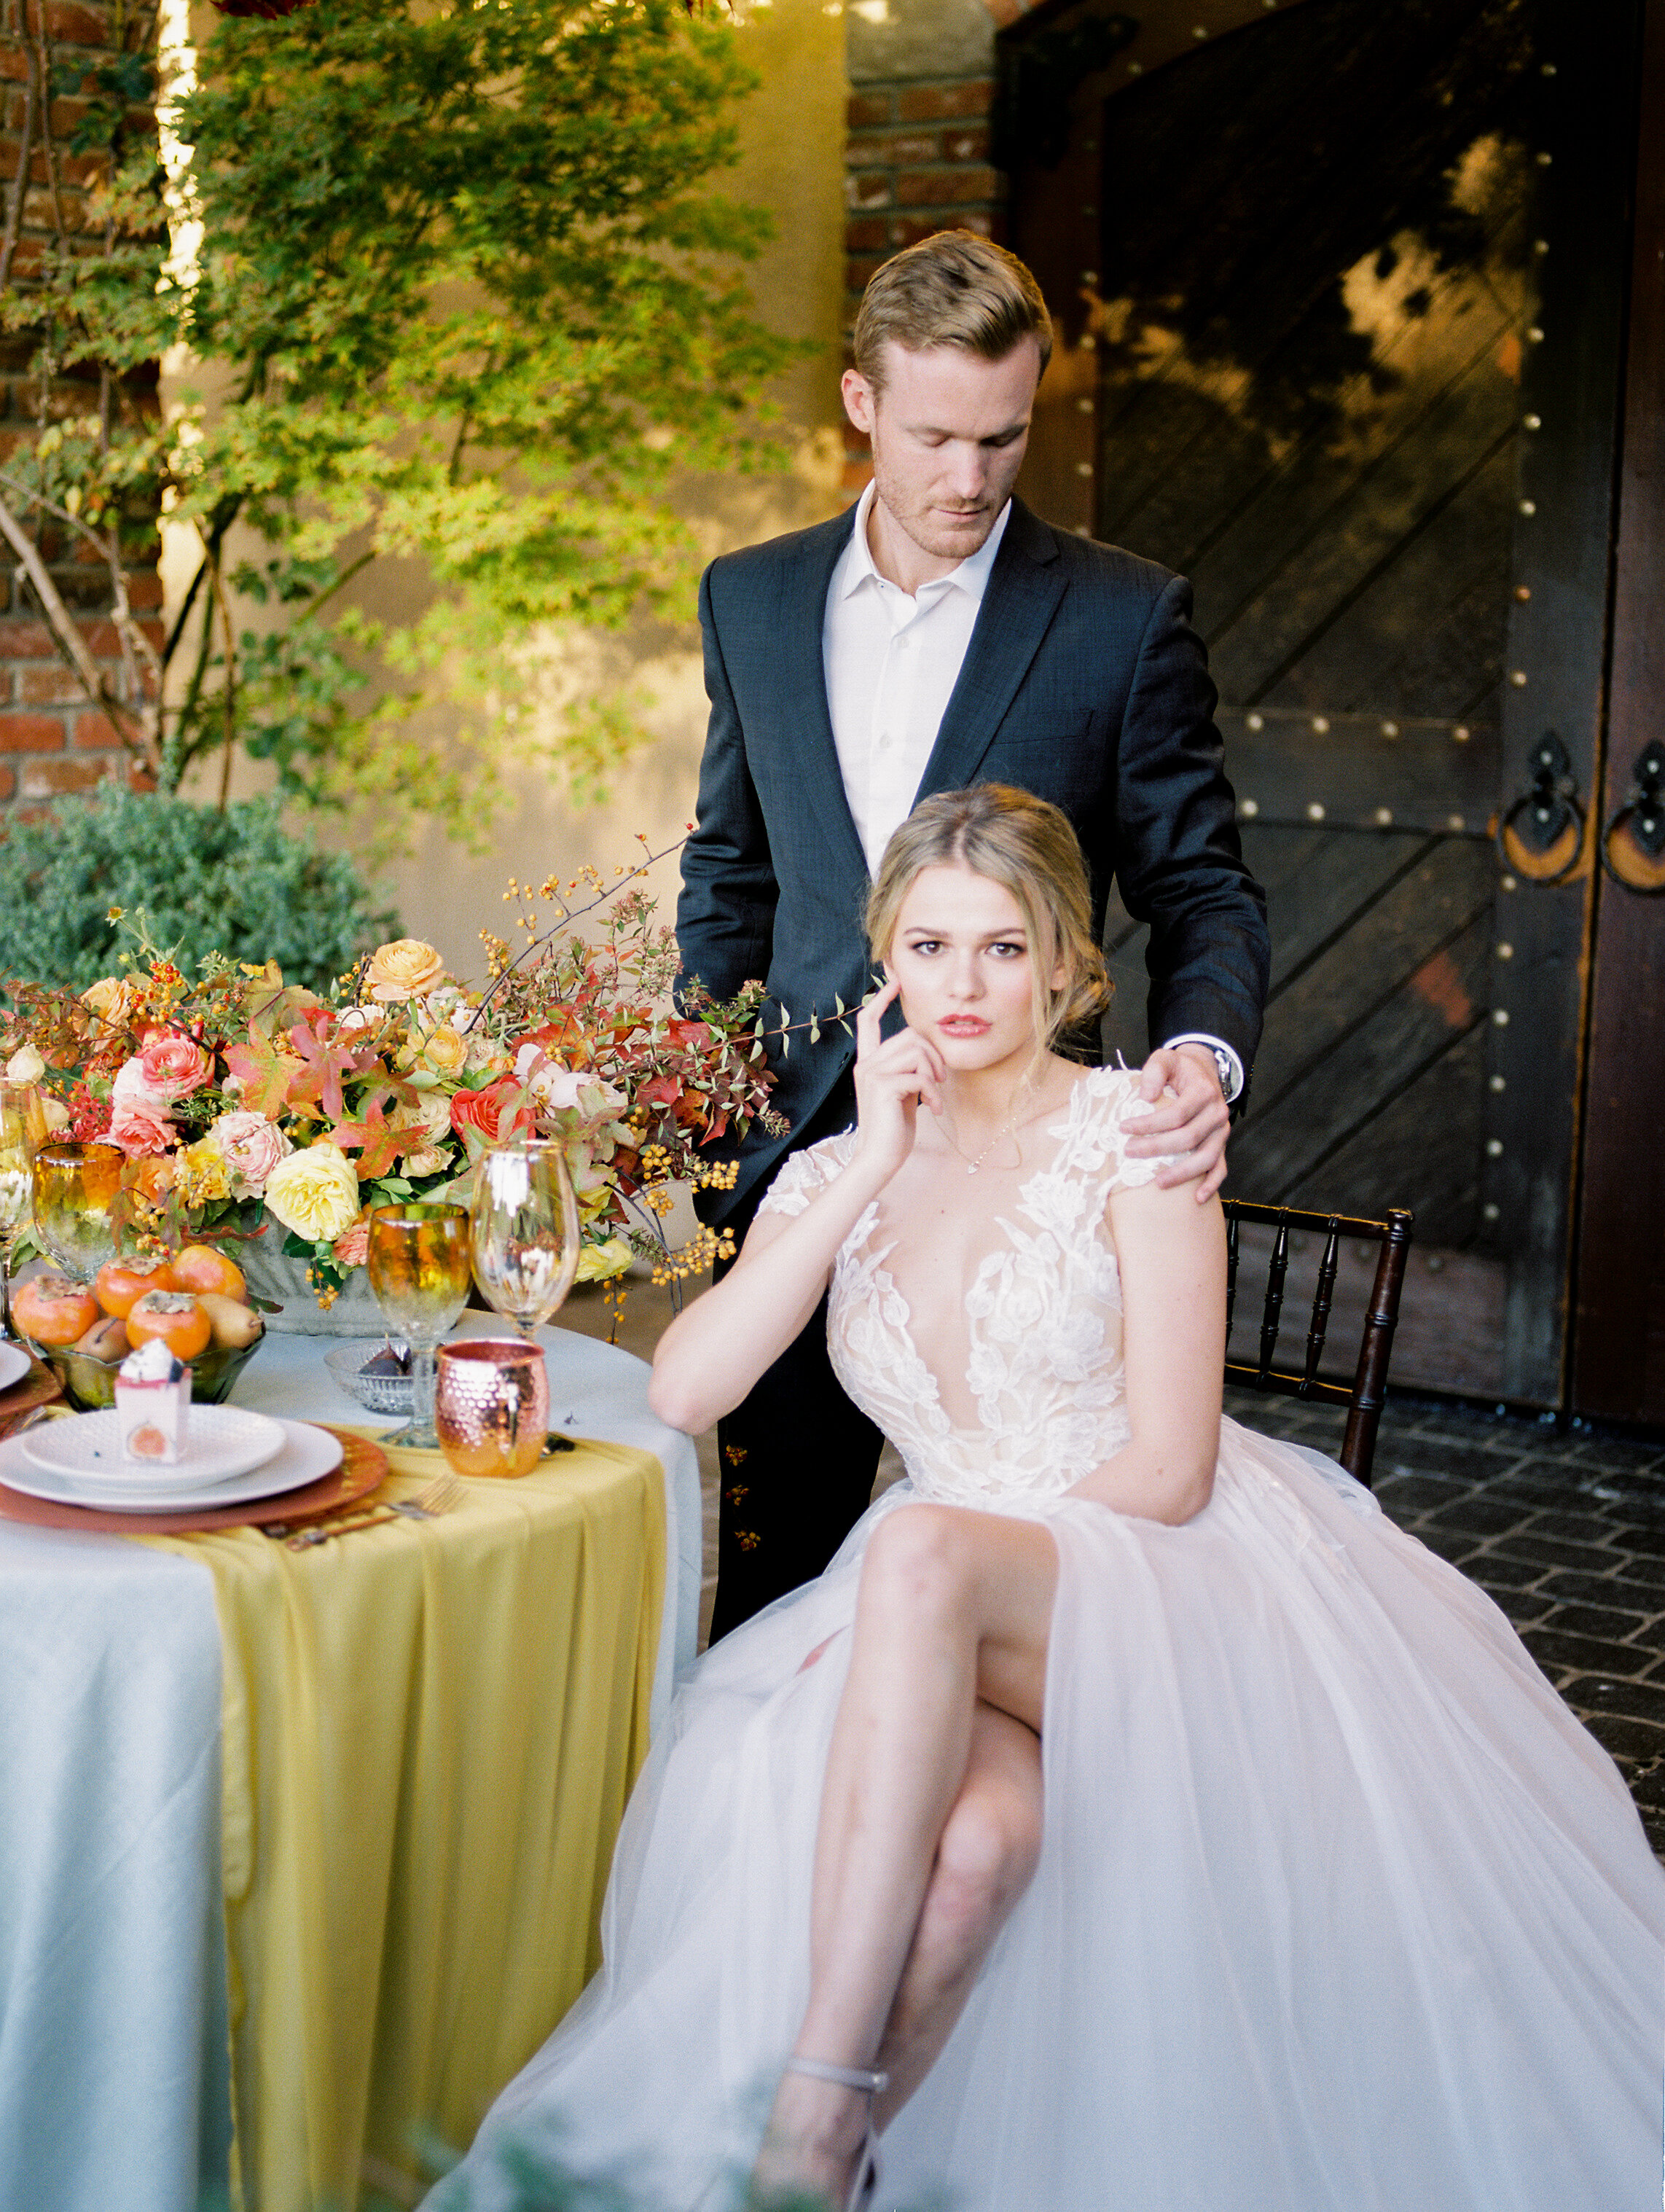 ultimate fall wedding shoot ideas for 2019